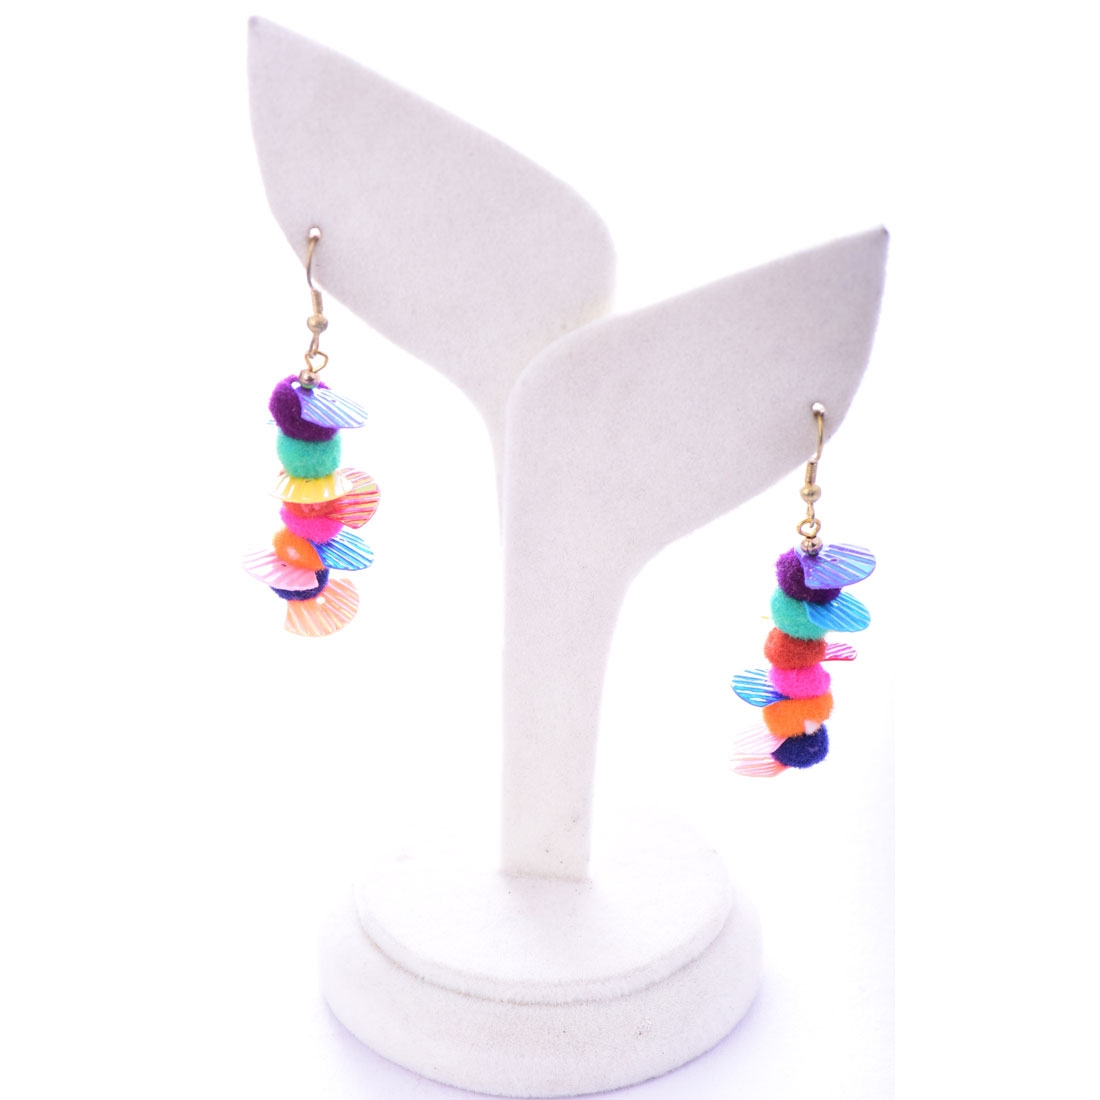 Beads India Autumn Sunset 1404519 Earrings